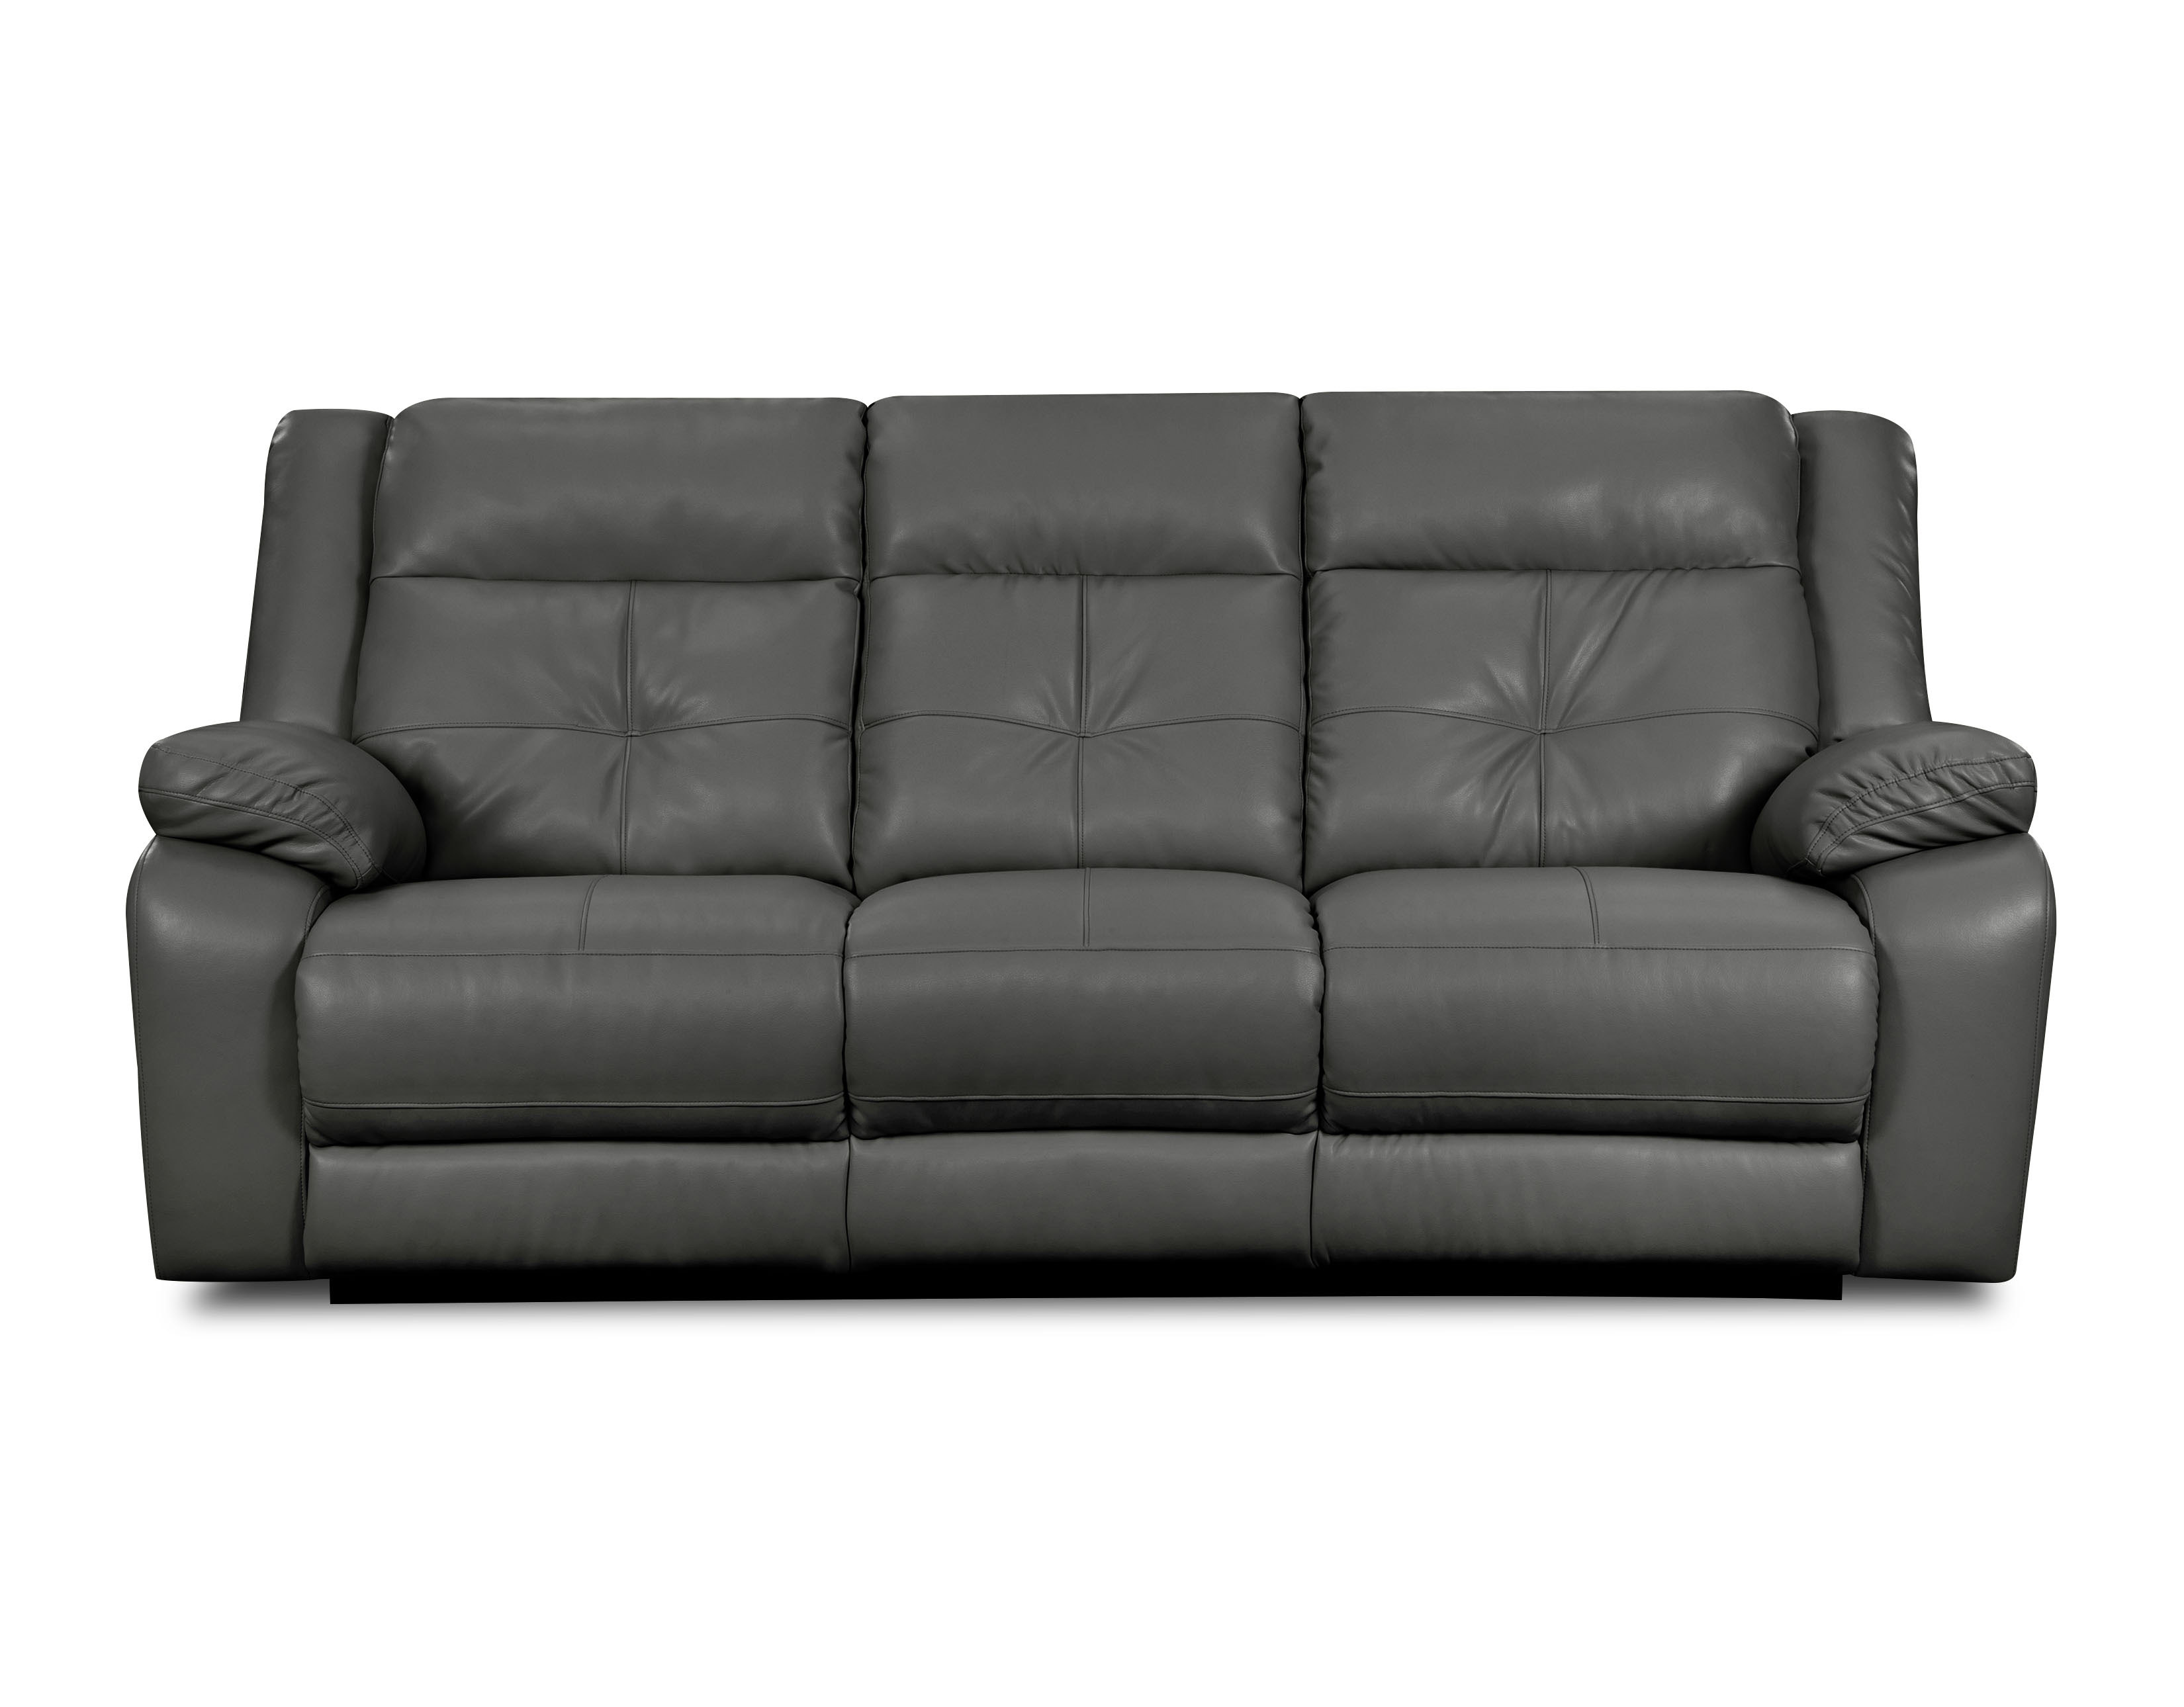 sears clearwater sofa sectional marsden sleeper in white simmons upholstery miracle dual power motion charcoal